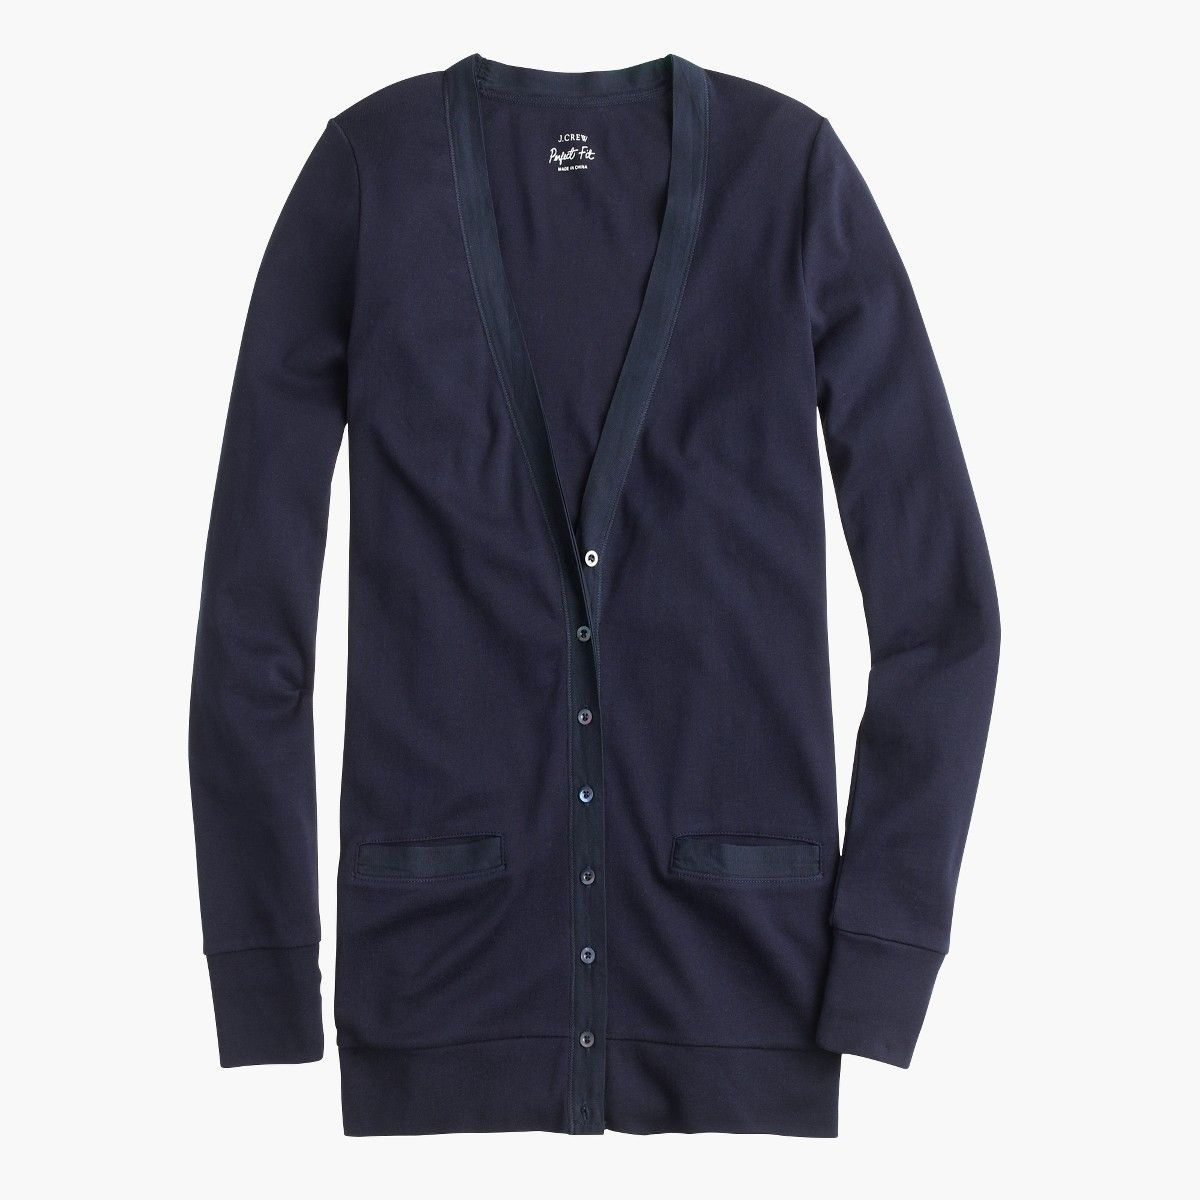 Shop the Perfect-Fit Mixed-Tape Cardigan Sweater at JCrew.com and ...